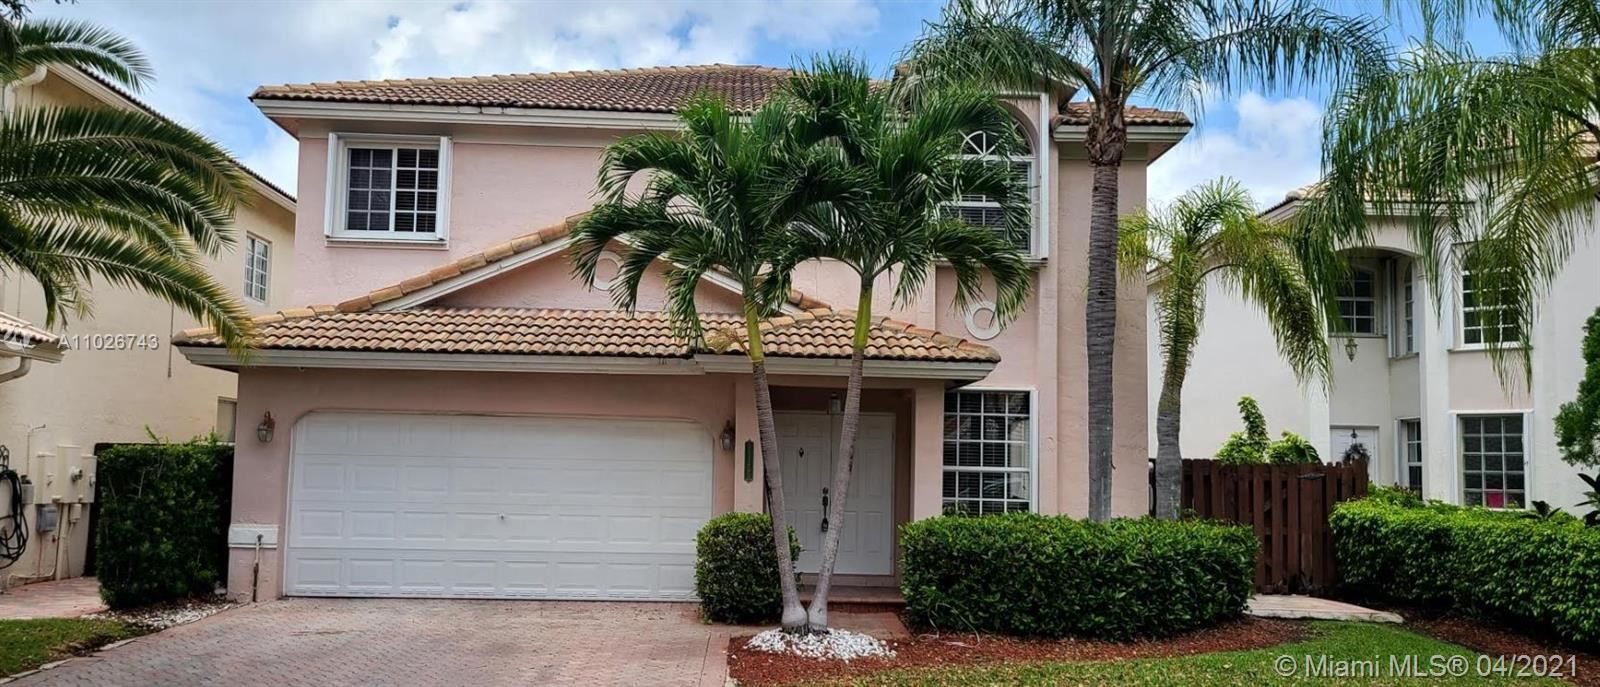 11155 NW 72nd Ter, Doral, FL 33178 - #: A11026743